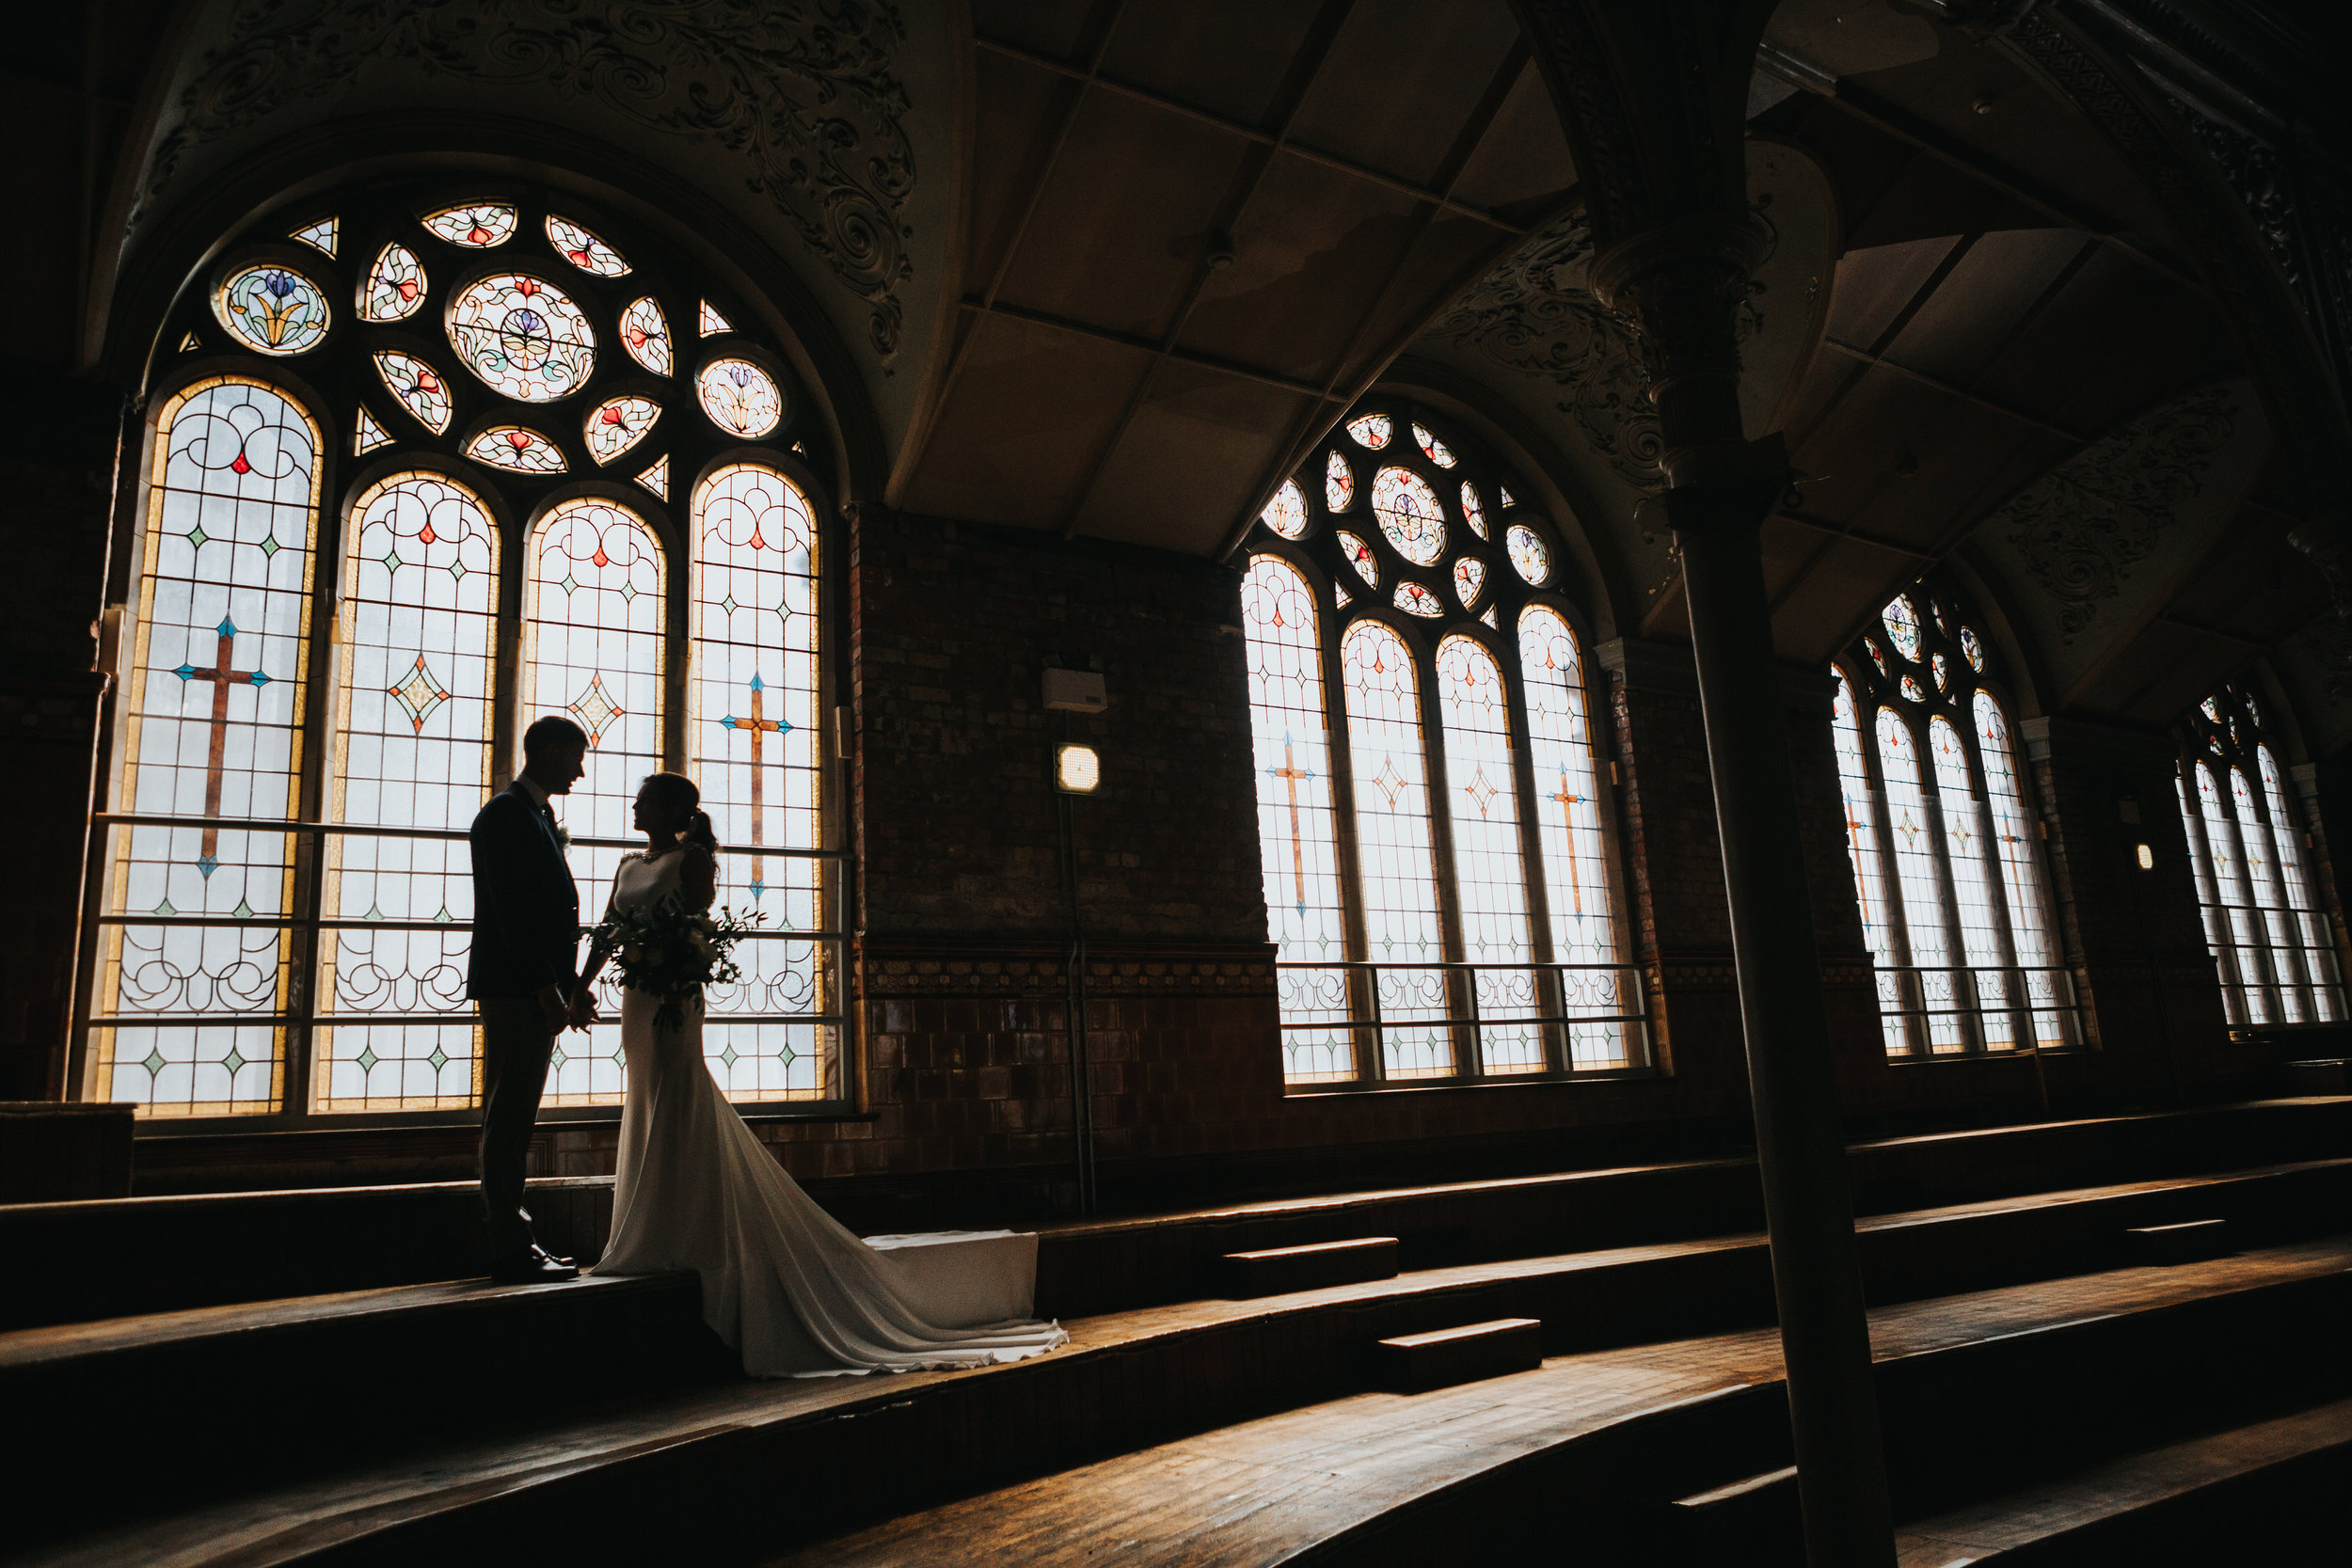 The couple stand holding hands in front of a huge stain glass window.